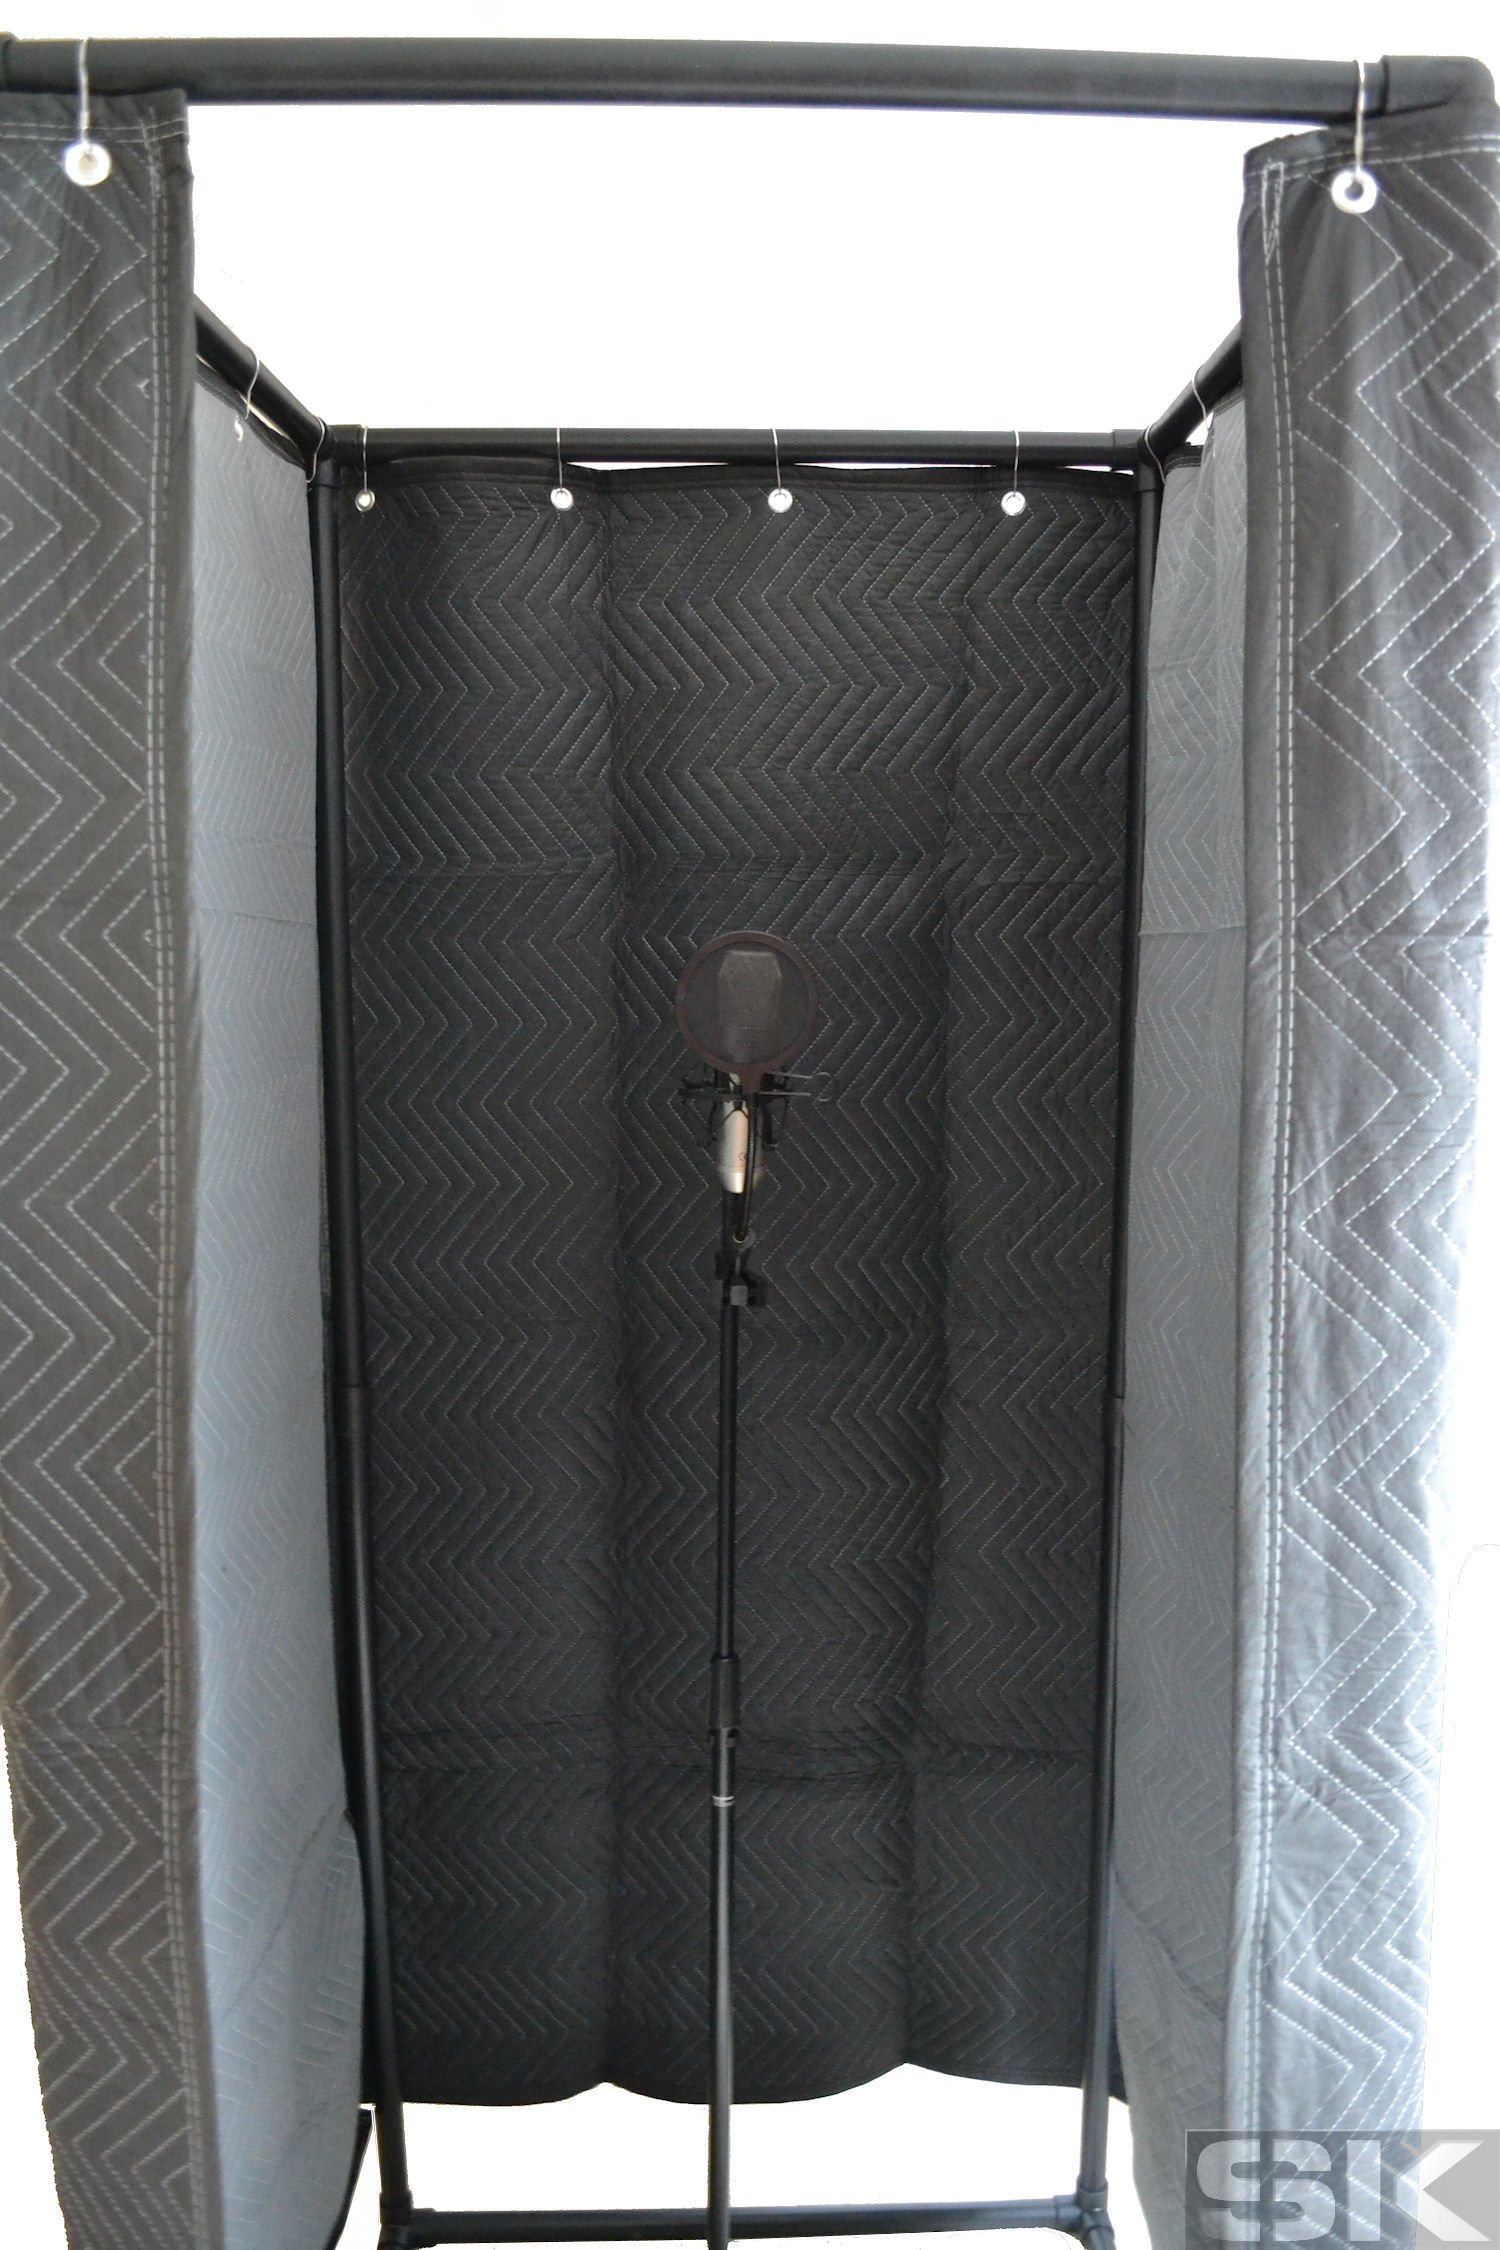 SK Vocal Booth - Deluxe Walk-In Sound Recording Studio Vocal Isolation Booth for creating Studio Acoustics and Reducing Sound Reflections, Noise & Echo